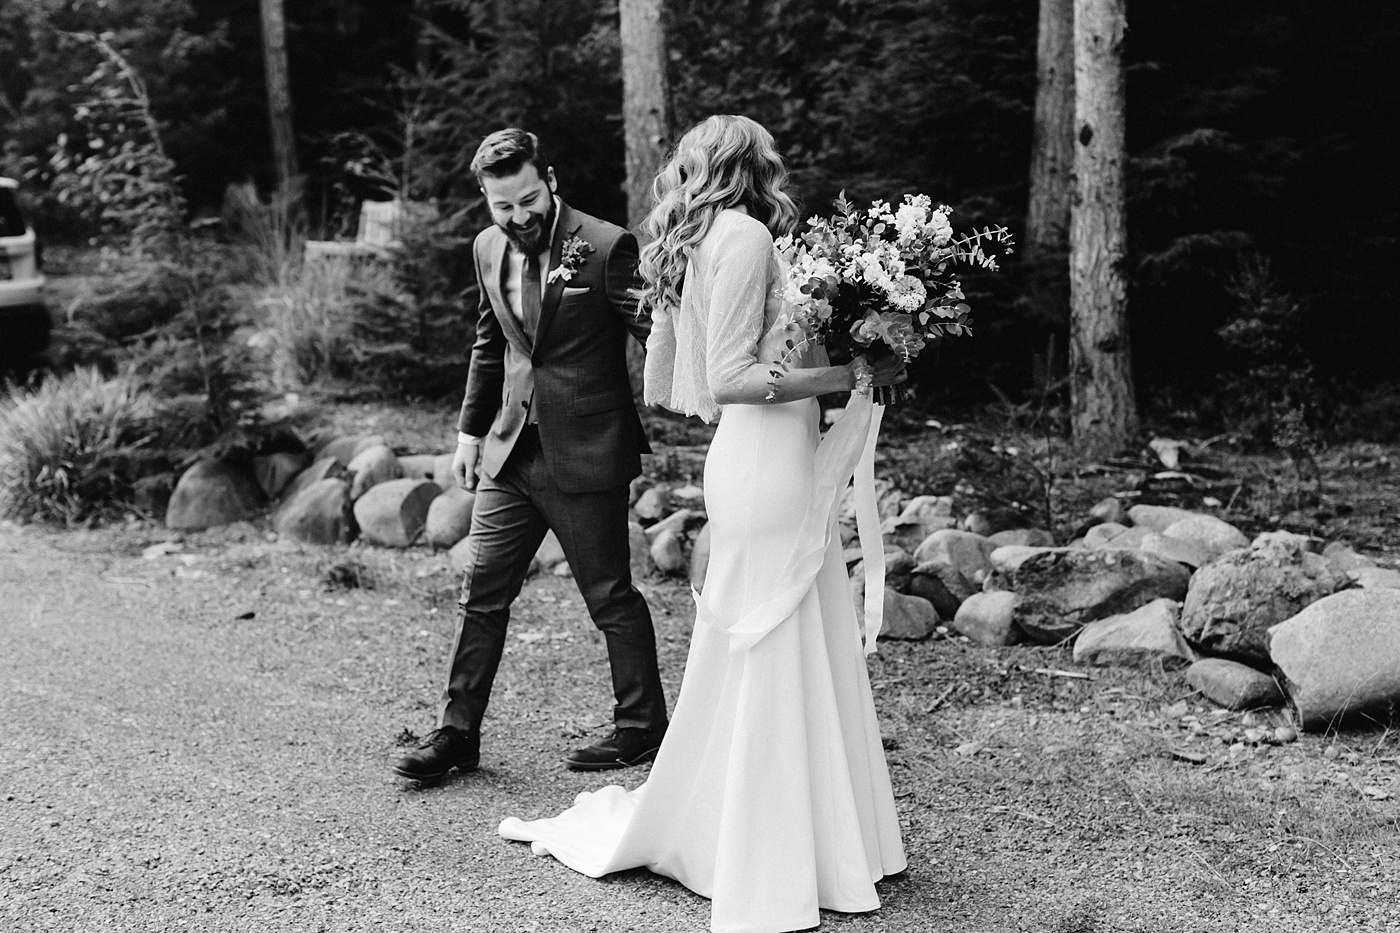 candid wedding photographer groom sees bride for first time